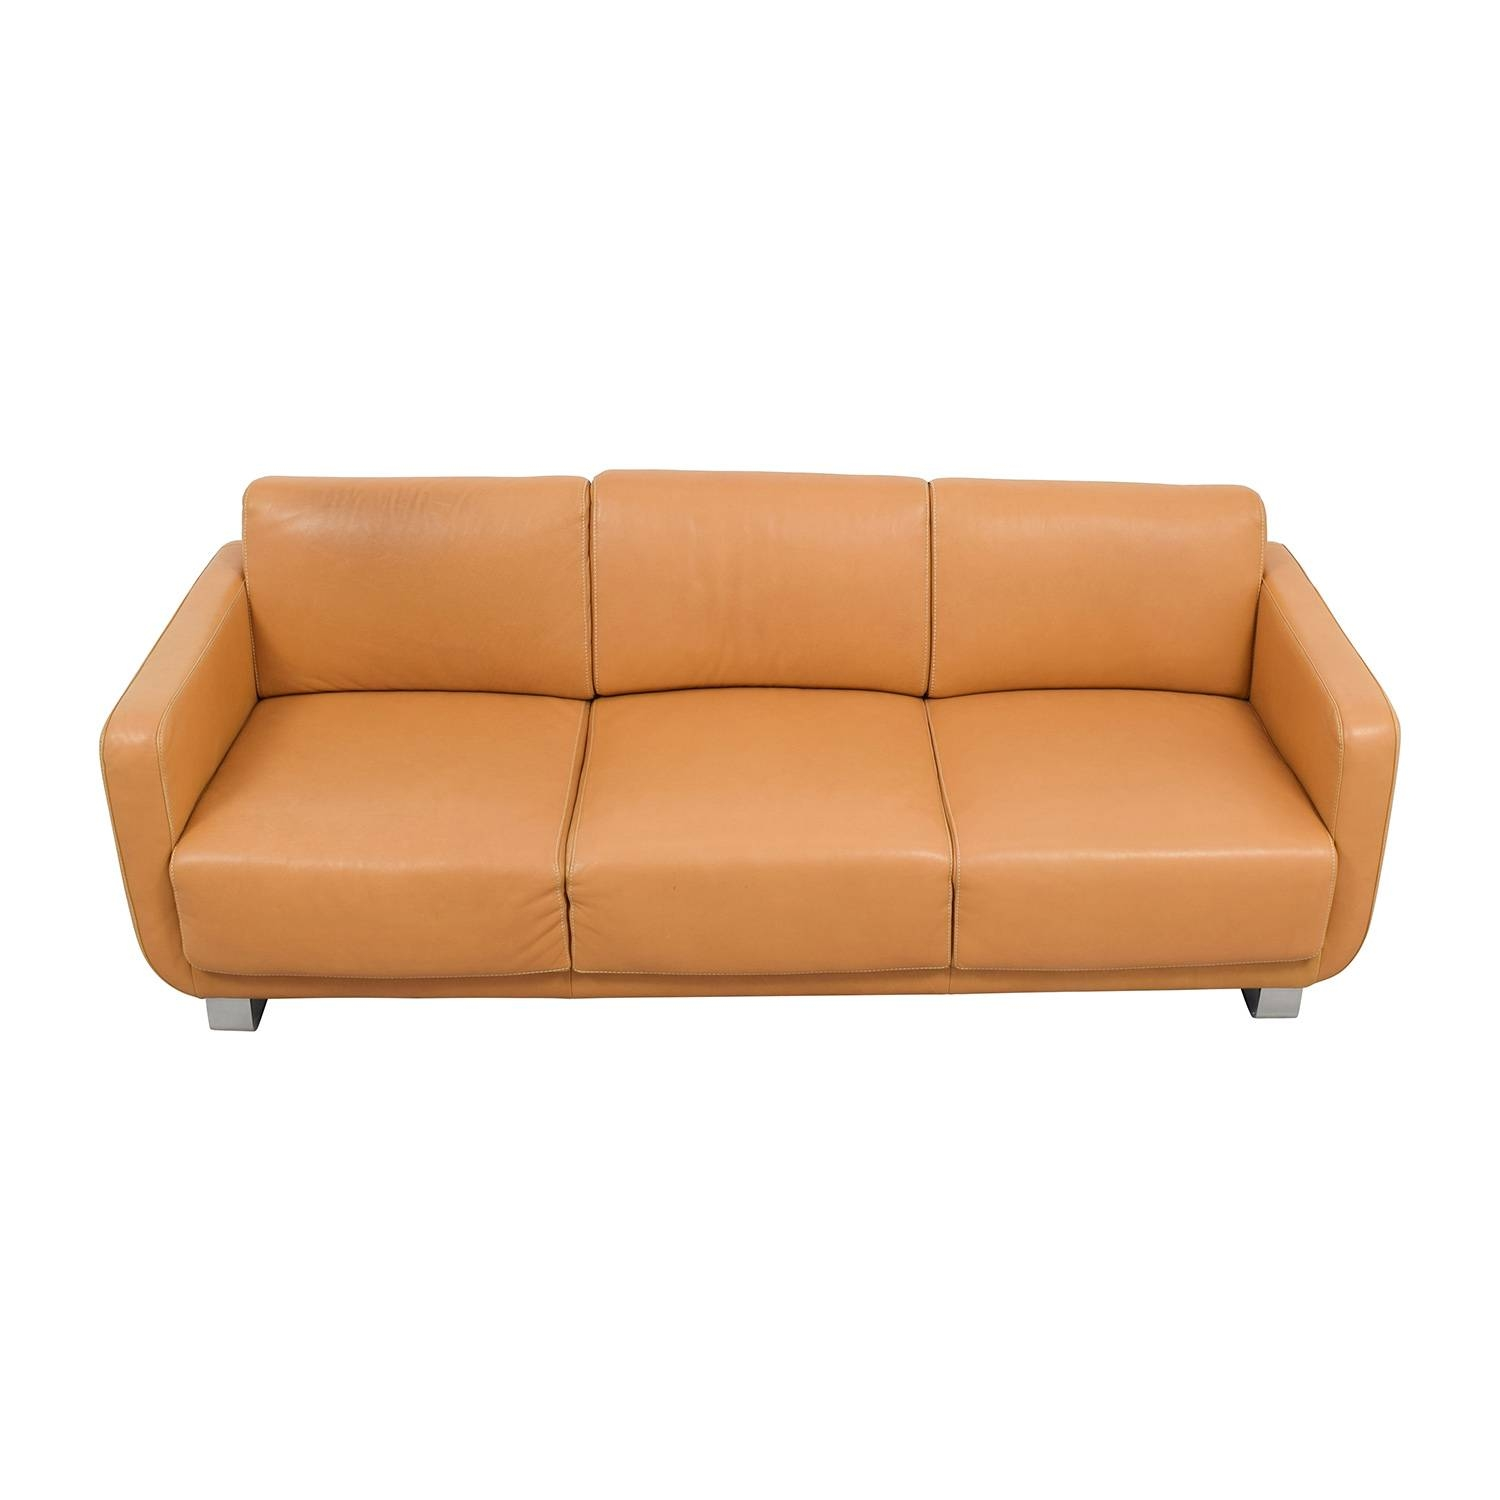 76% Off - Nicolletti Nicolletti Black Leather Sofa And Ottoman / Sofas throughout Classic Sofas for Sale (Image 10 of 30)